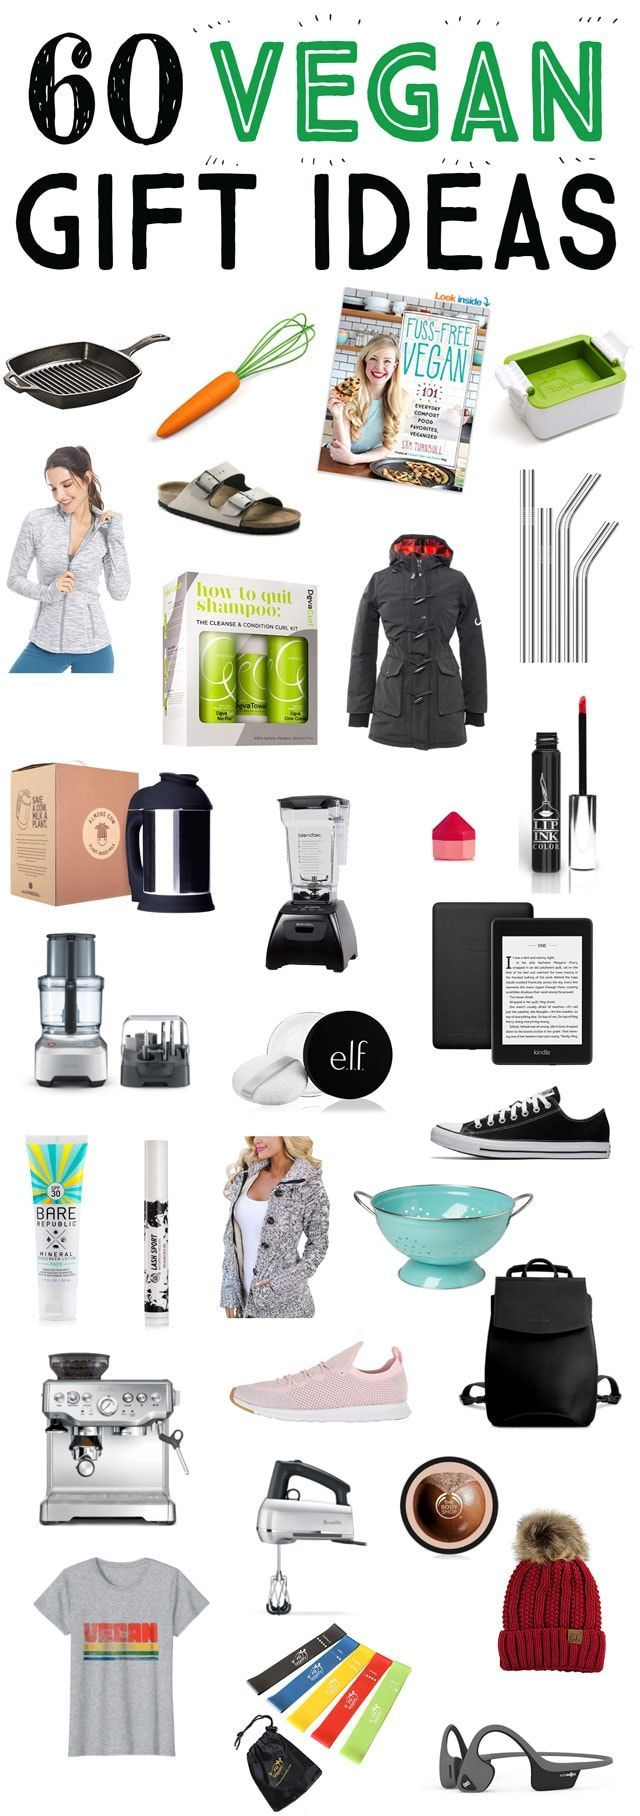 60 Vegan Gift Ideas Vegan Gifts Vegan Christmas Gifts Diy Food Gifts